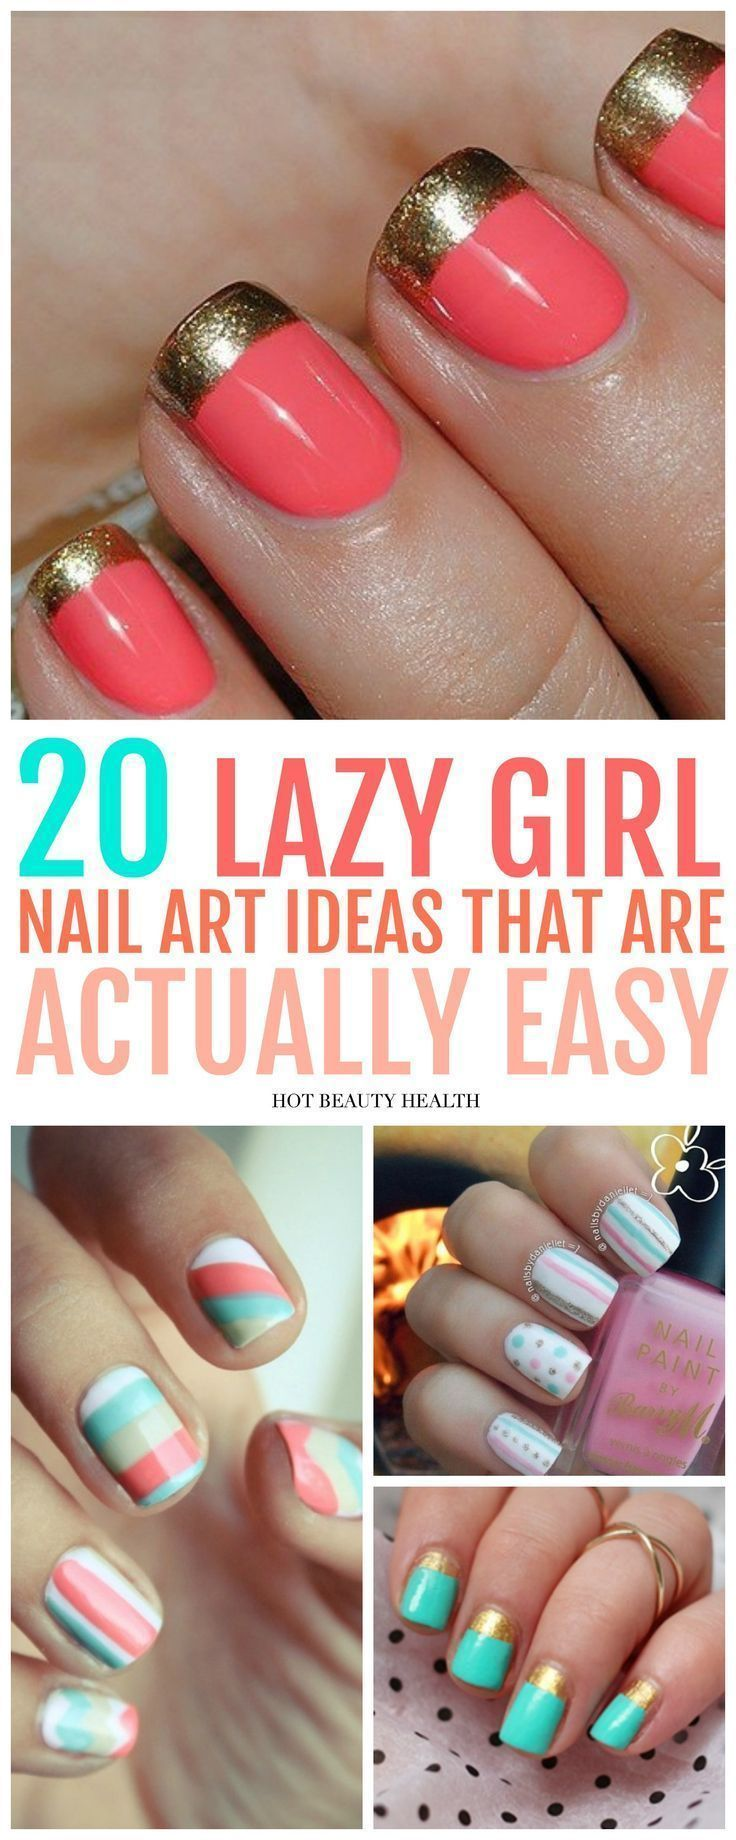 20 Simple Nail Designs For Beginners Hot Beauty Health Kids Nail Designs Simple Nail Art Designs Nails For Kids